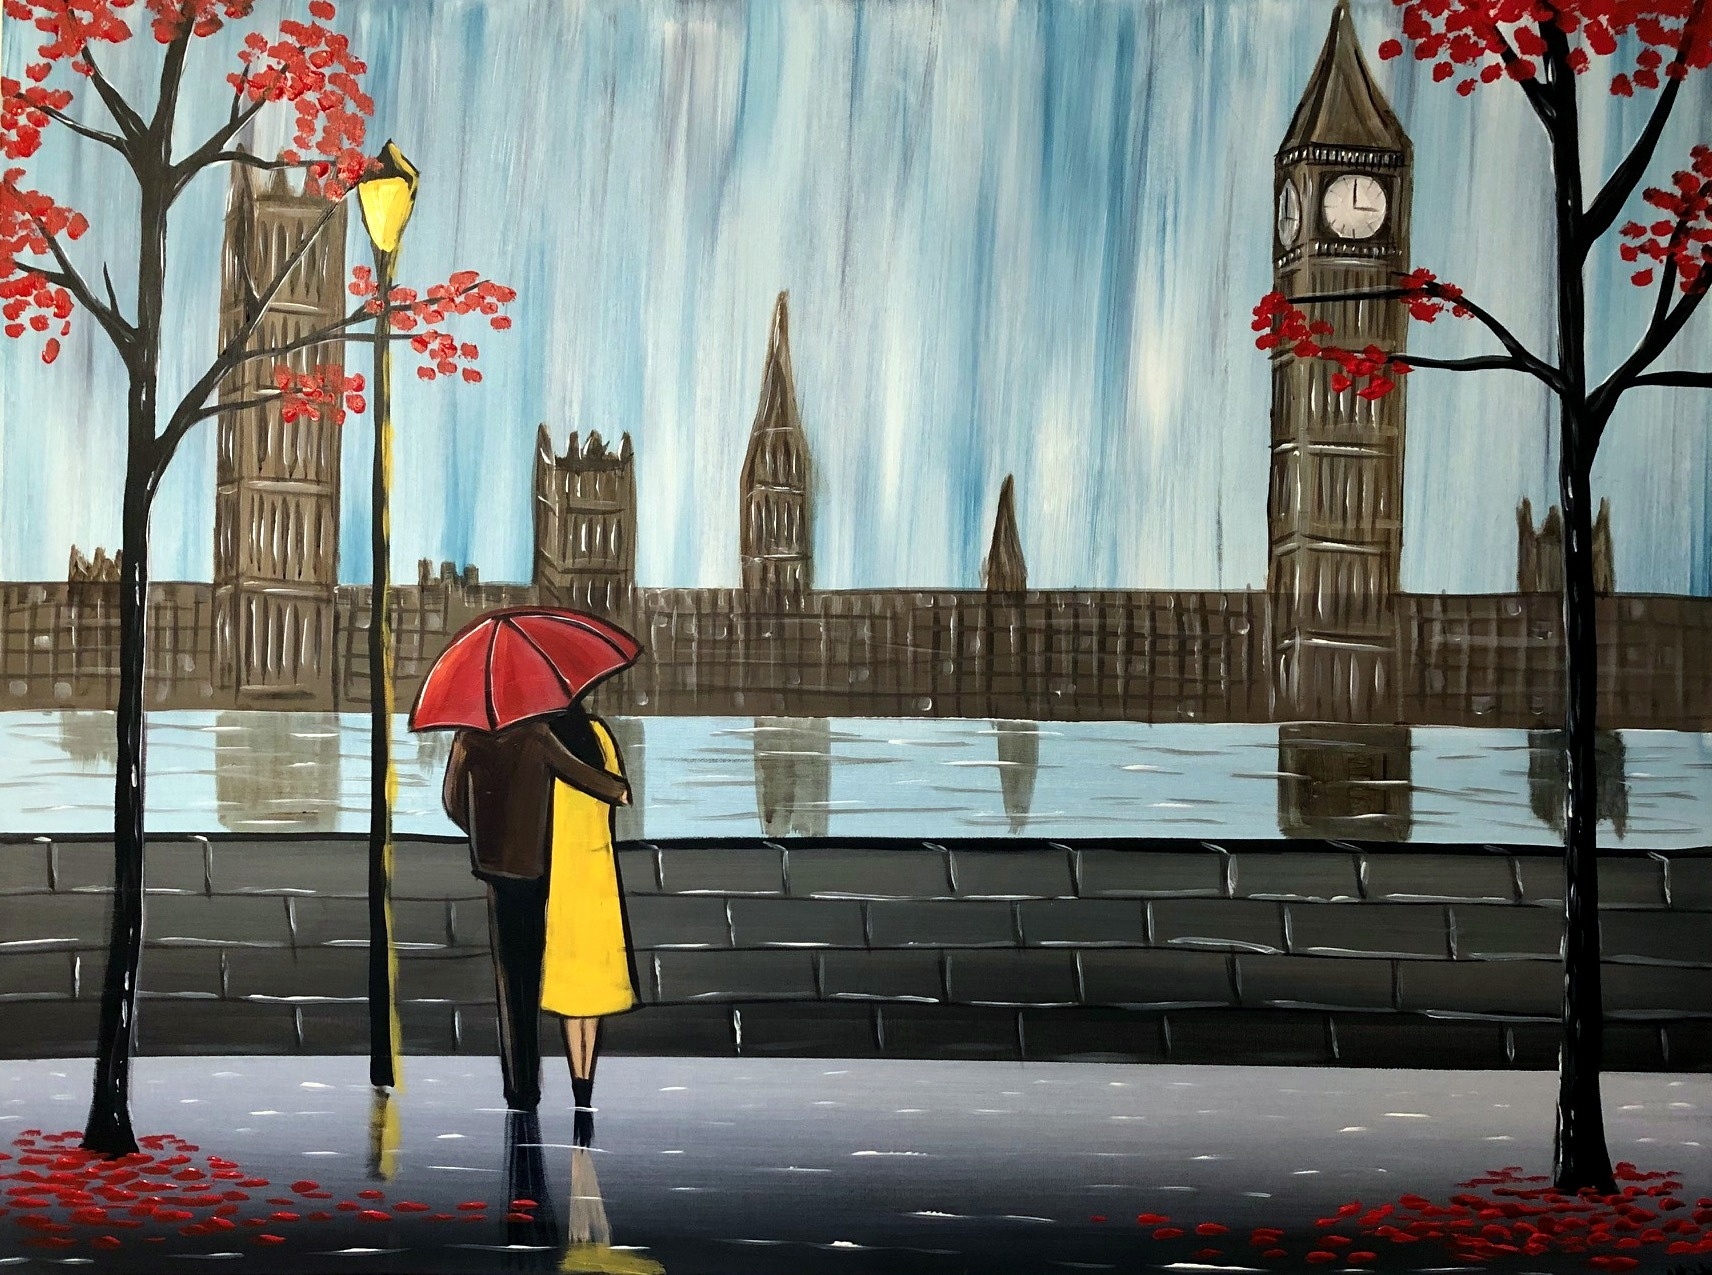 Lovers in Rainy London painting